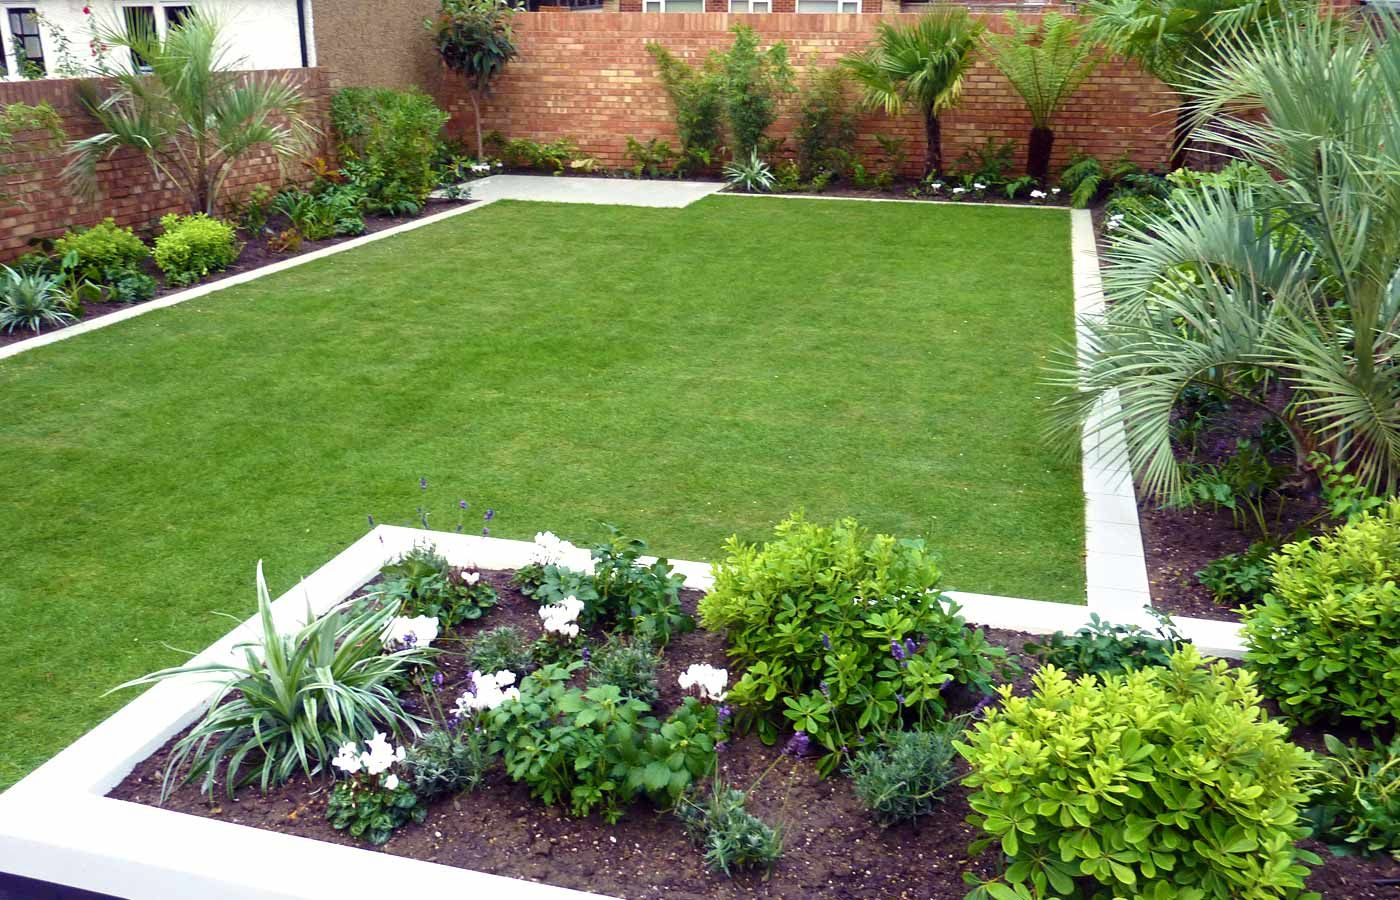 Garden Design Ideas medium sized backyard landscape ideas with grass and bamboo